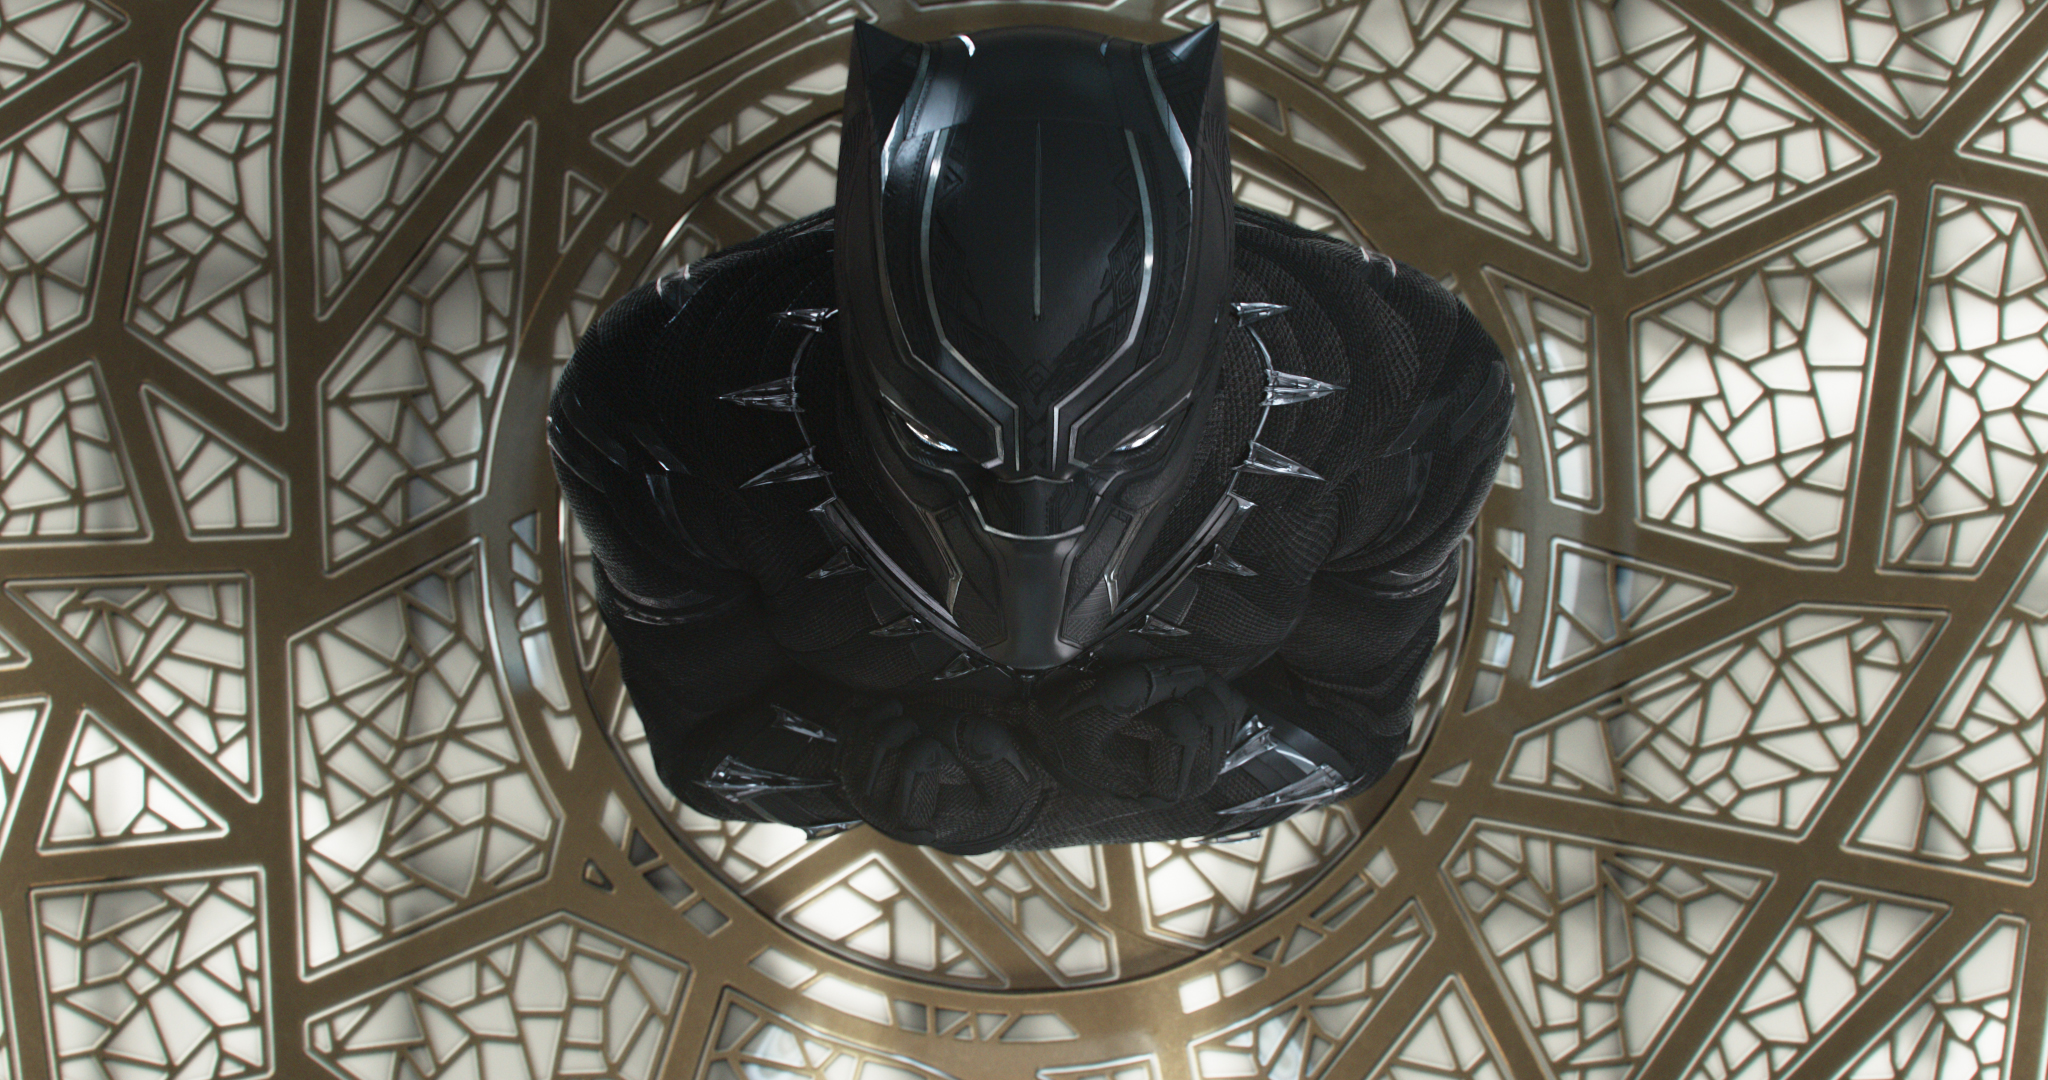 Black Panther, explained